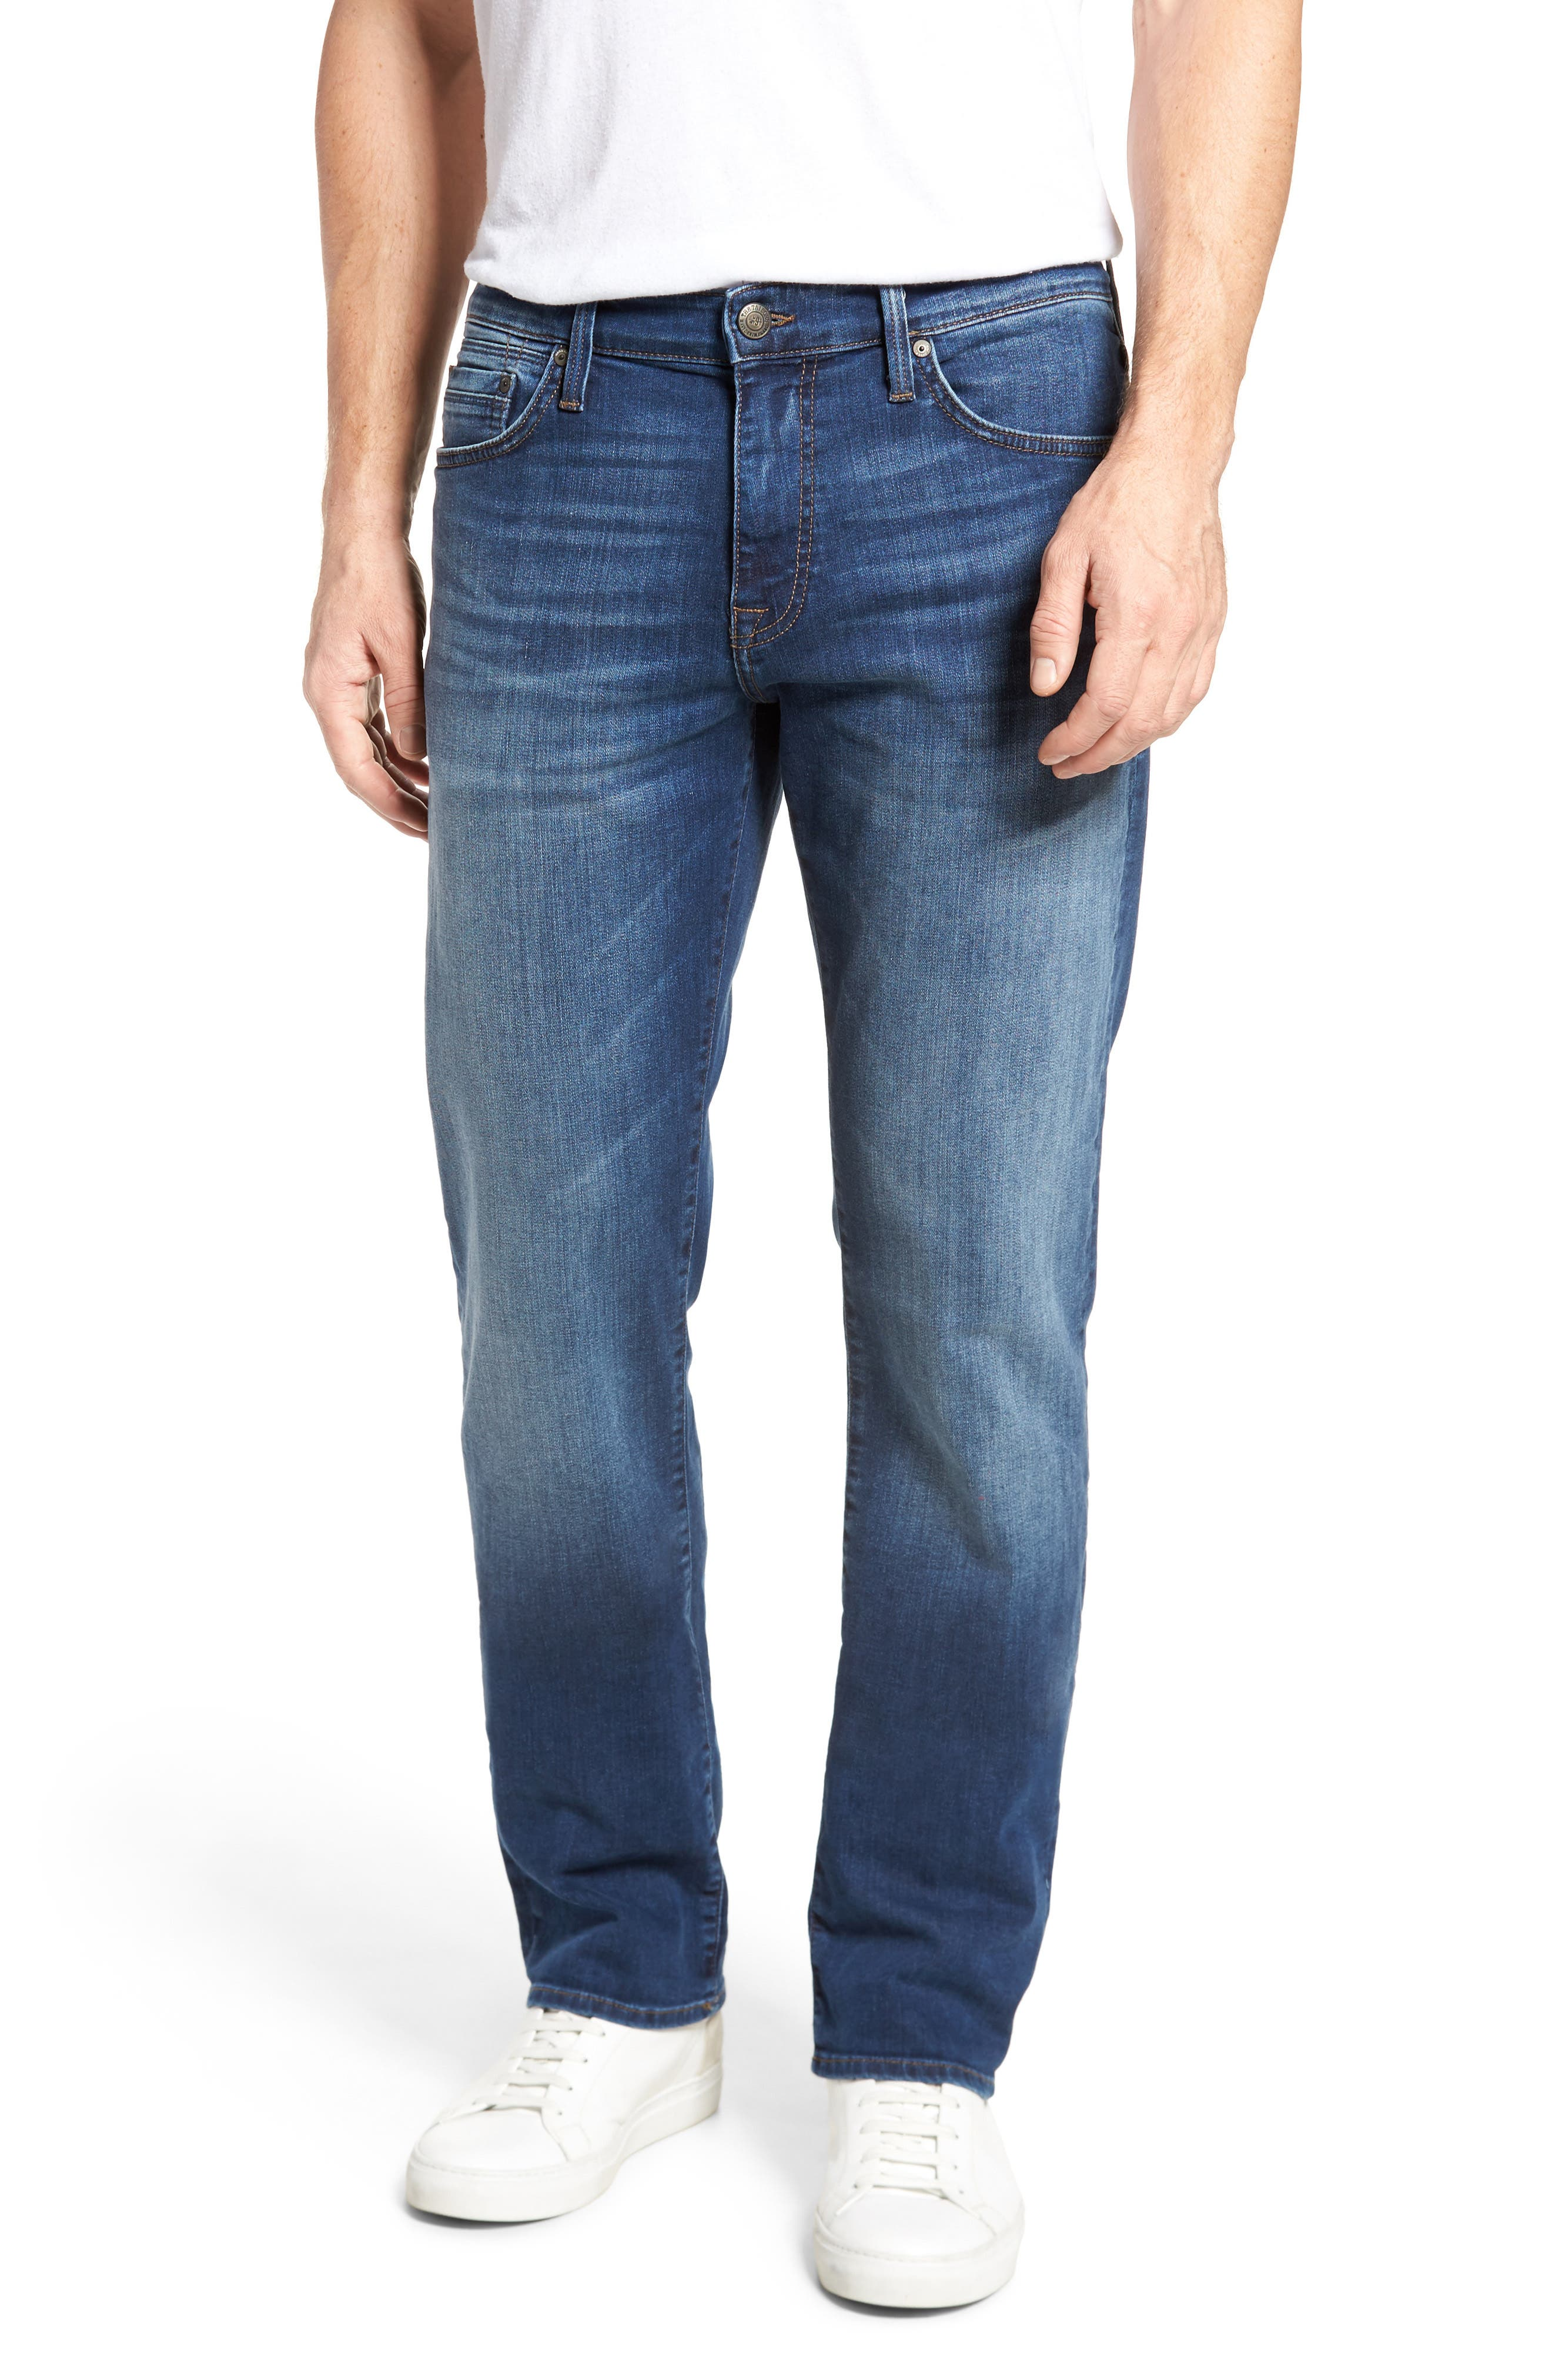 Myles Straight Fit Jeans,                             Main thumbnail 1, color,                             401